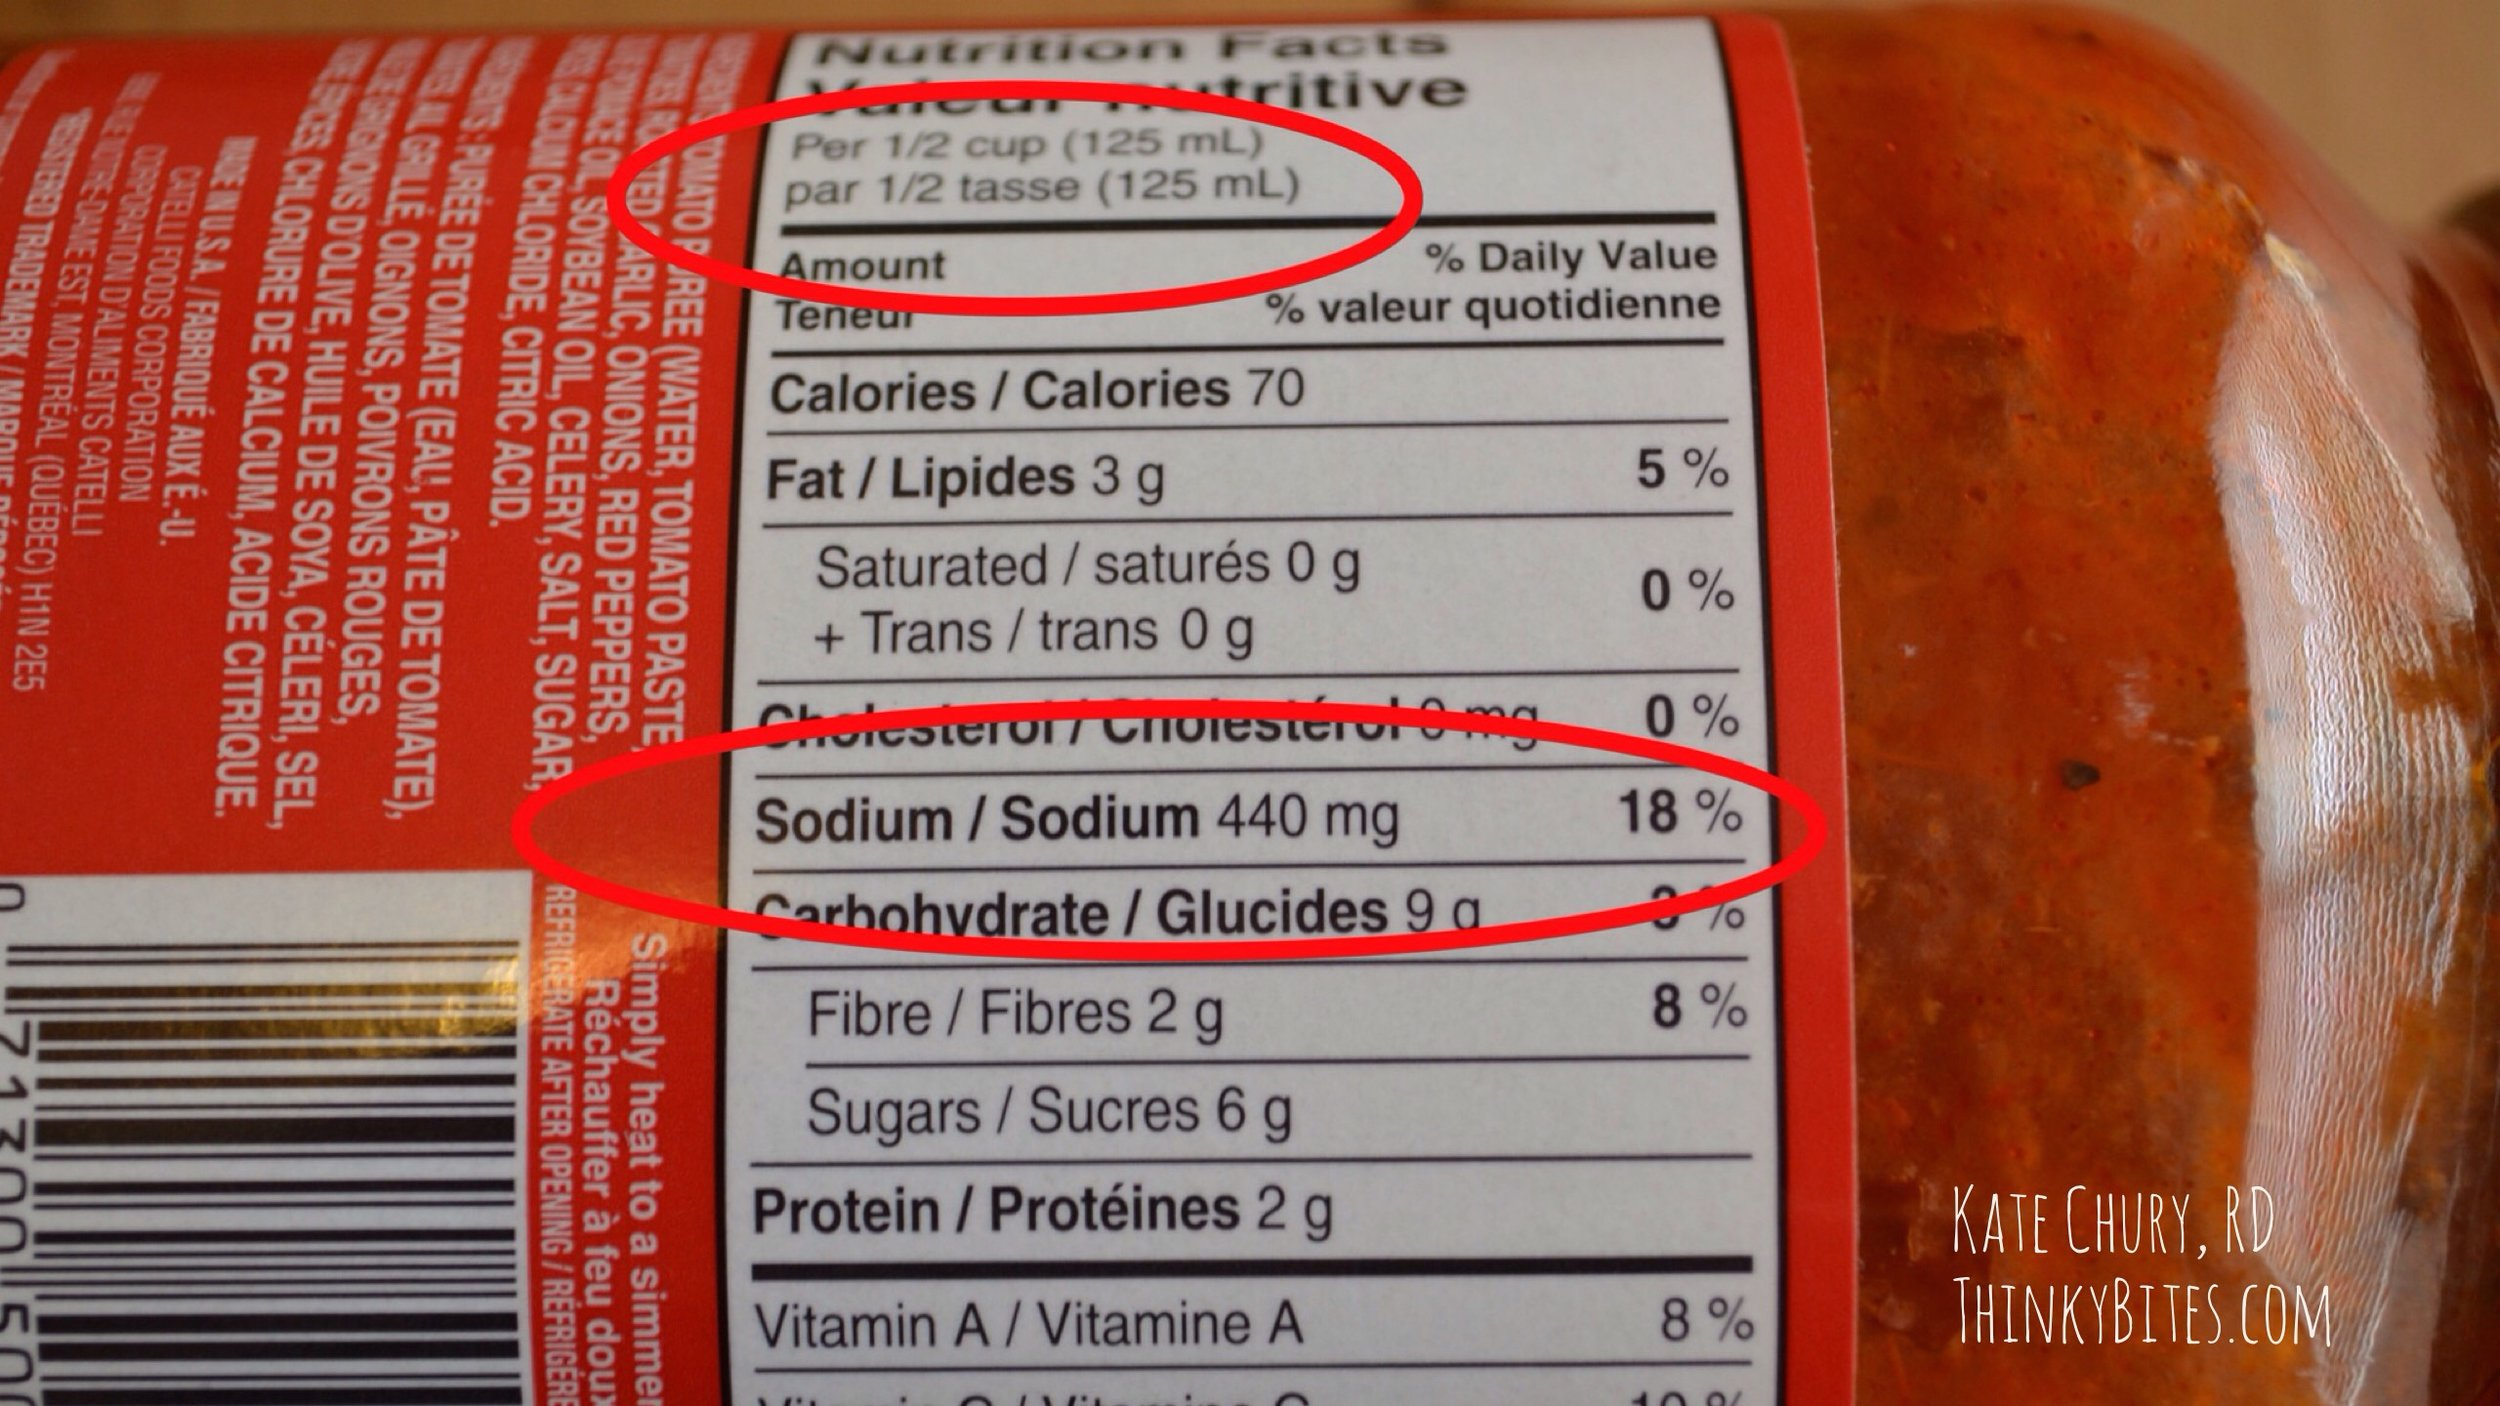 Product: Tomato sauce.  Sodium content: 18% Dv in 125 ml  Verdict: High in sodium.   It is very easy to have 2 or 3 of these 1/2 cup servings over top pasta which could equal 1/3 to 1/2 of the daily sodium allotment in one meal. There tends to be quite a bit of salt in pre-made pasta sauces.